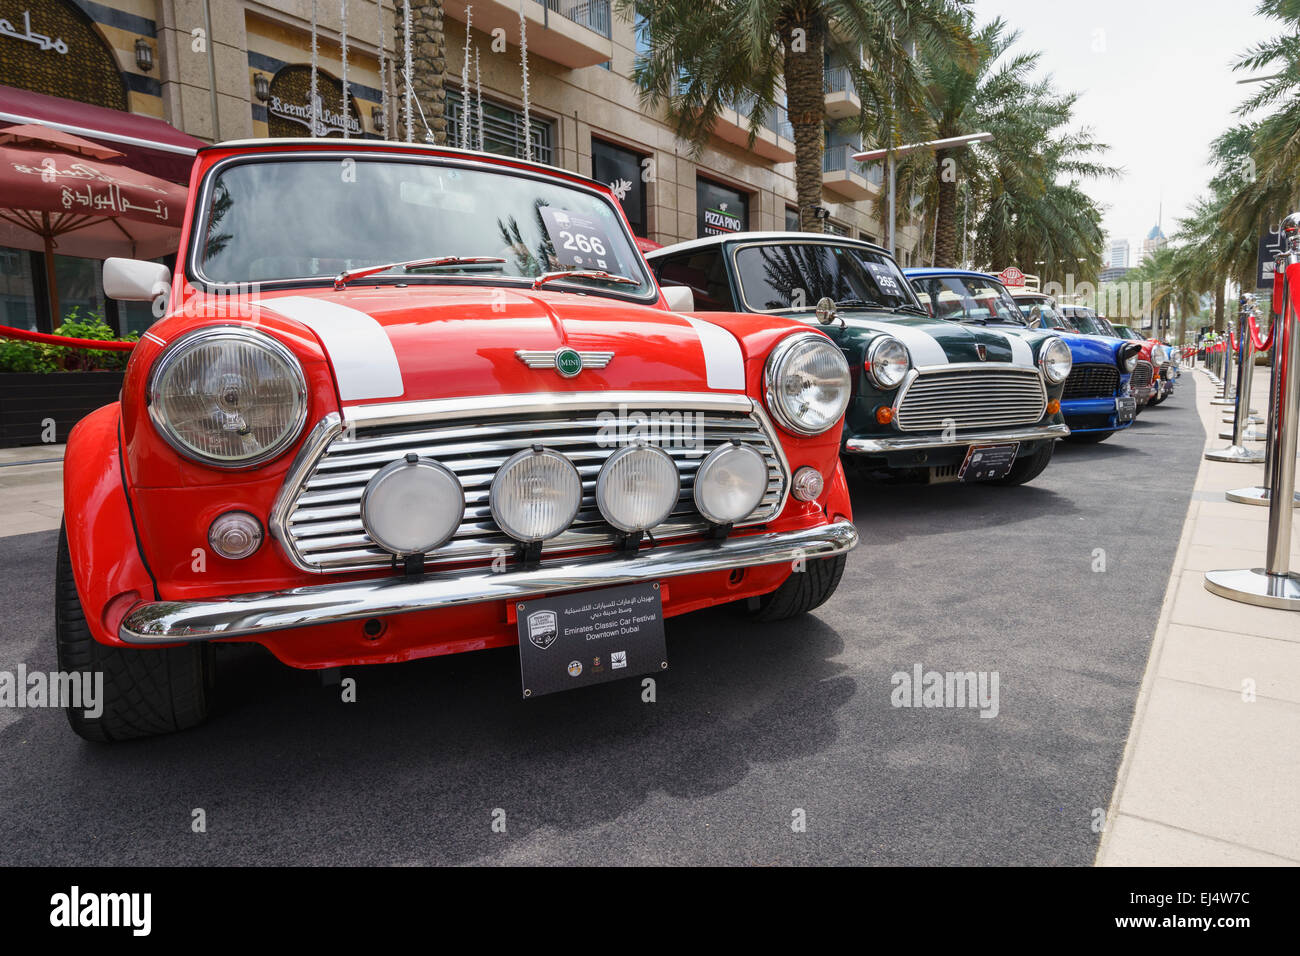 Mini-Oldtimer auf dem Display auf dem Emirates Classic Car Festival März 2015 in Downtown District von Dubai Stockbild